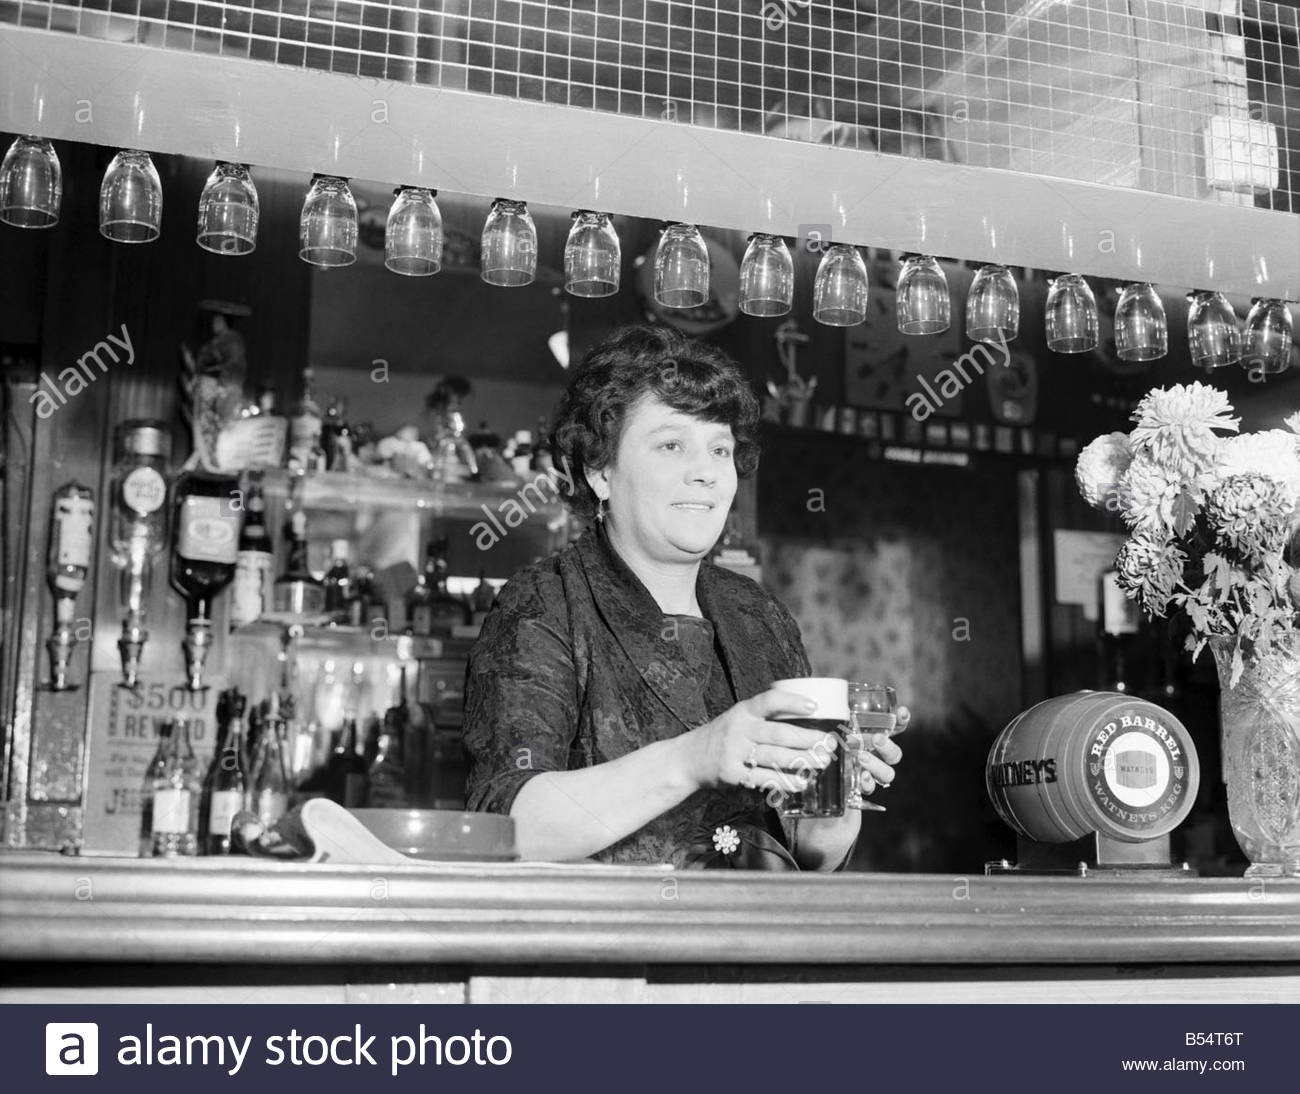 Landlady of the 'China Hall' pub, Bermondsey.jpg